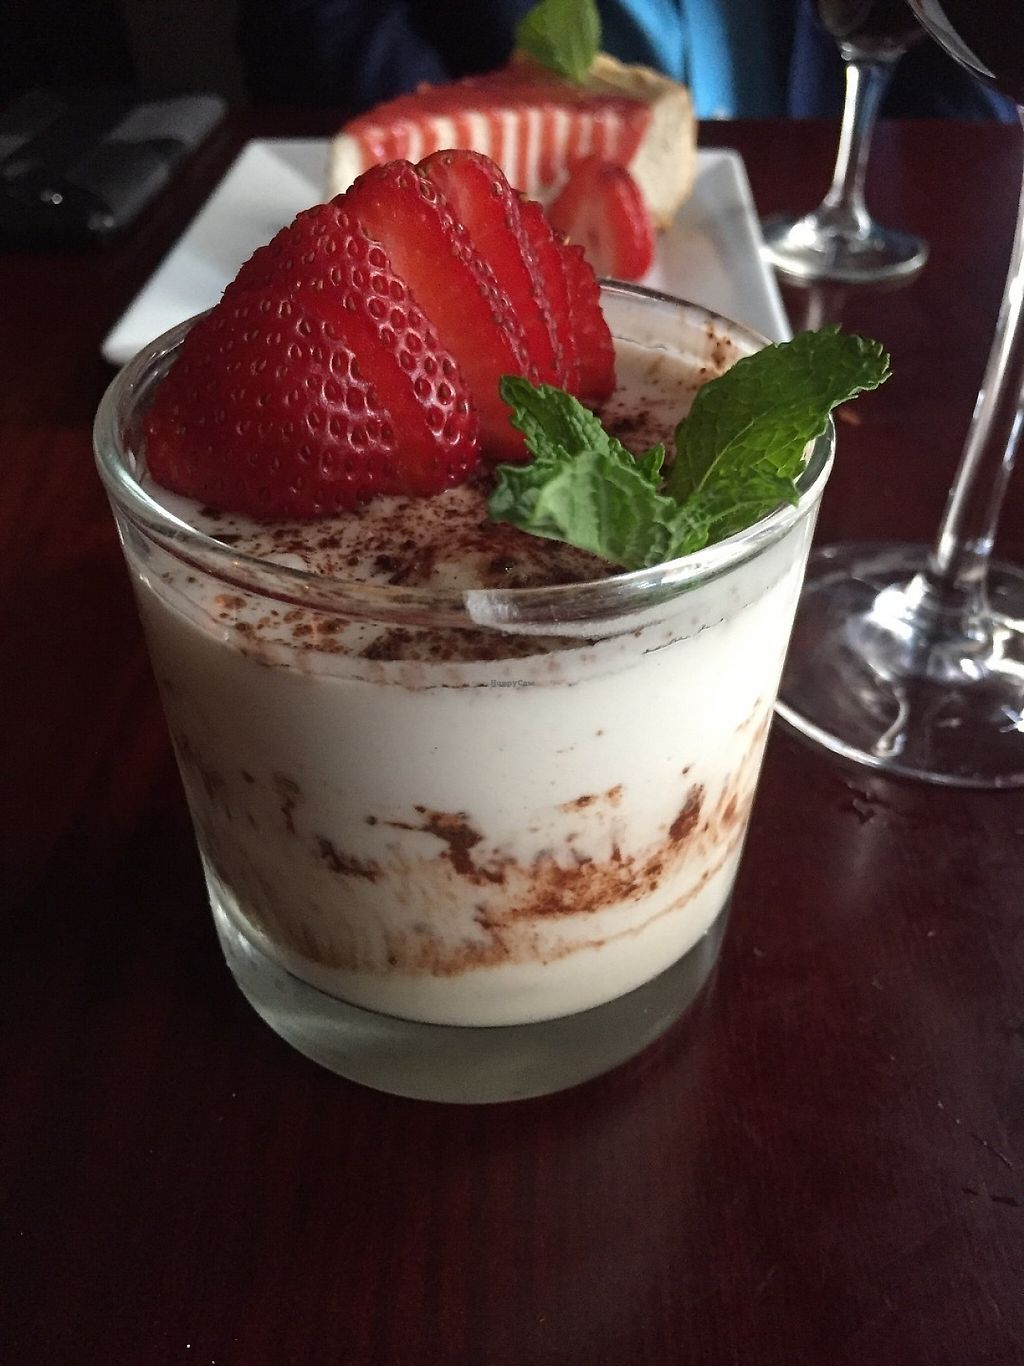 """Photo of Blossom Restaurant  by <a href=""""/members/profile/KaitlynnGill"""">KaitlynnGill</a> <br/>tiramisu  <br/> May 1, 2017  - <a href='/contact/abuse/image/6097/254766'>Report</a>"""